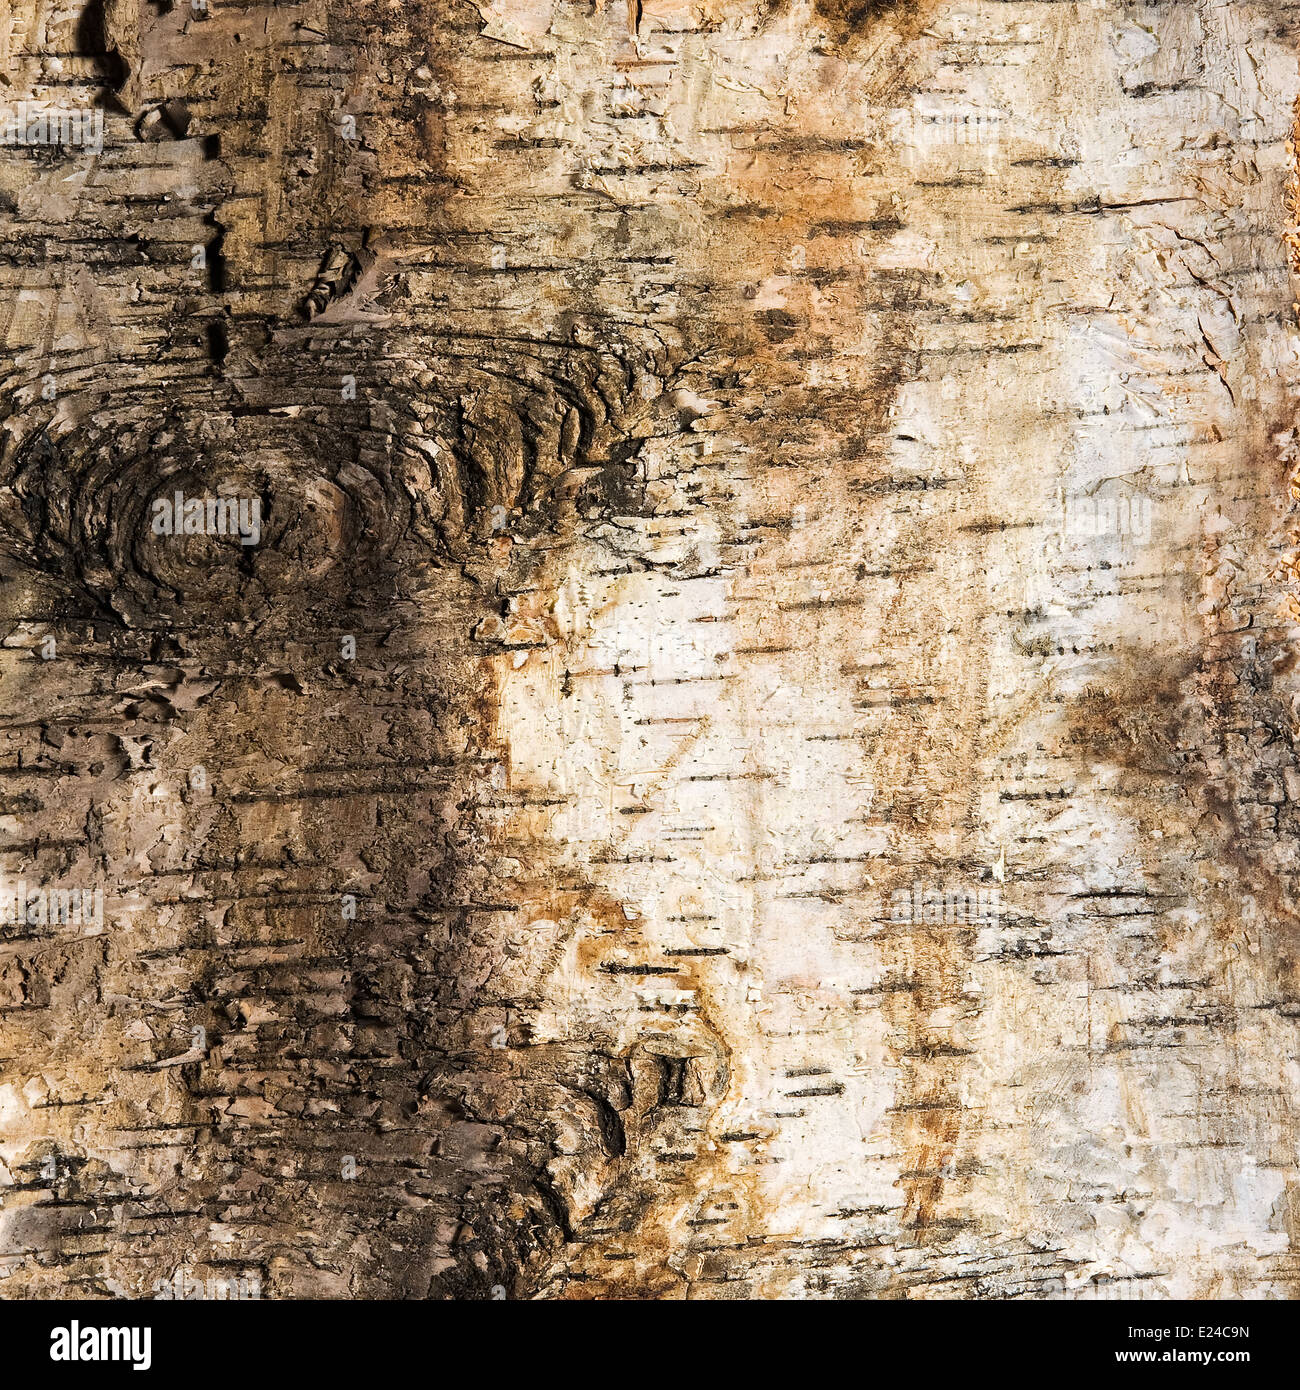 Background of birch bark with a knot - Stock Image